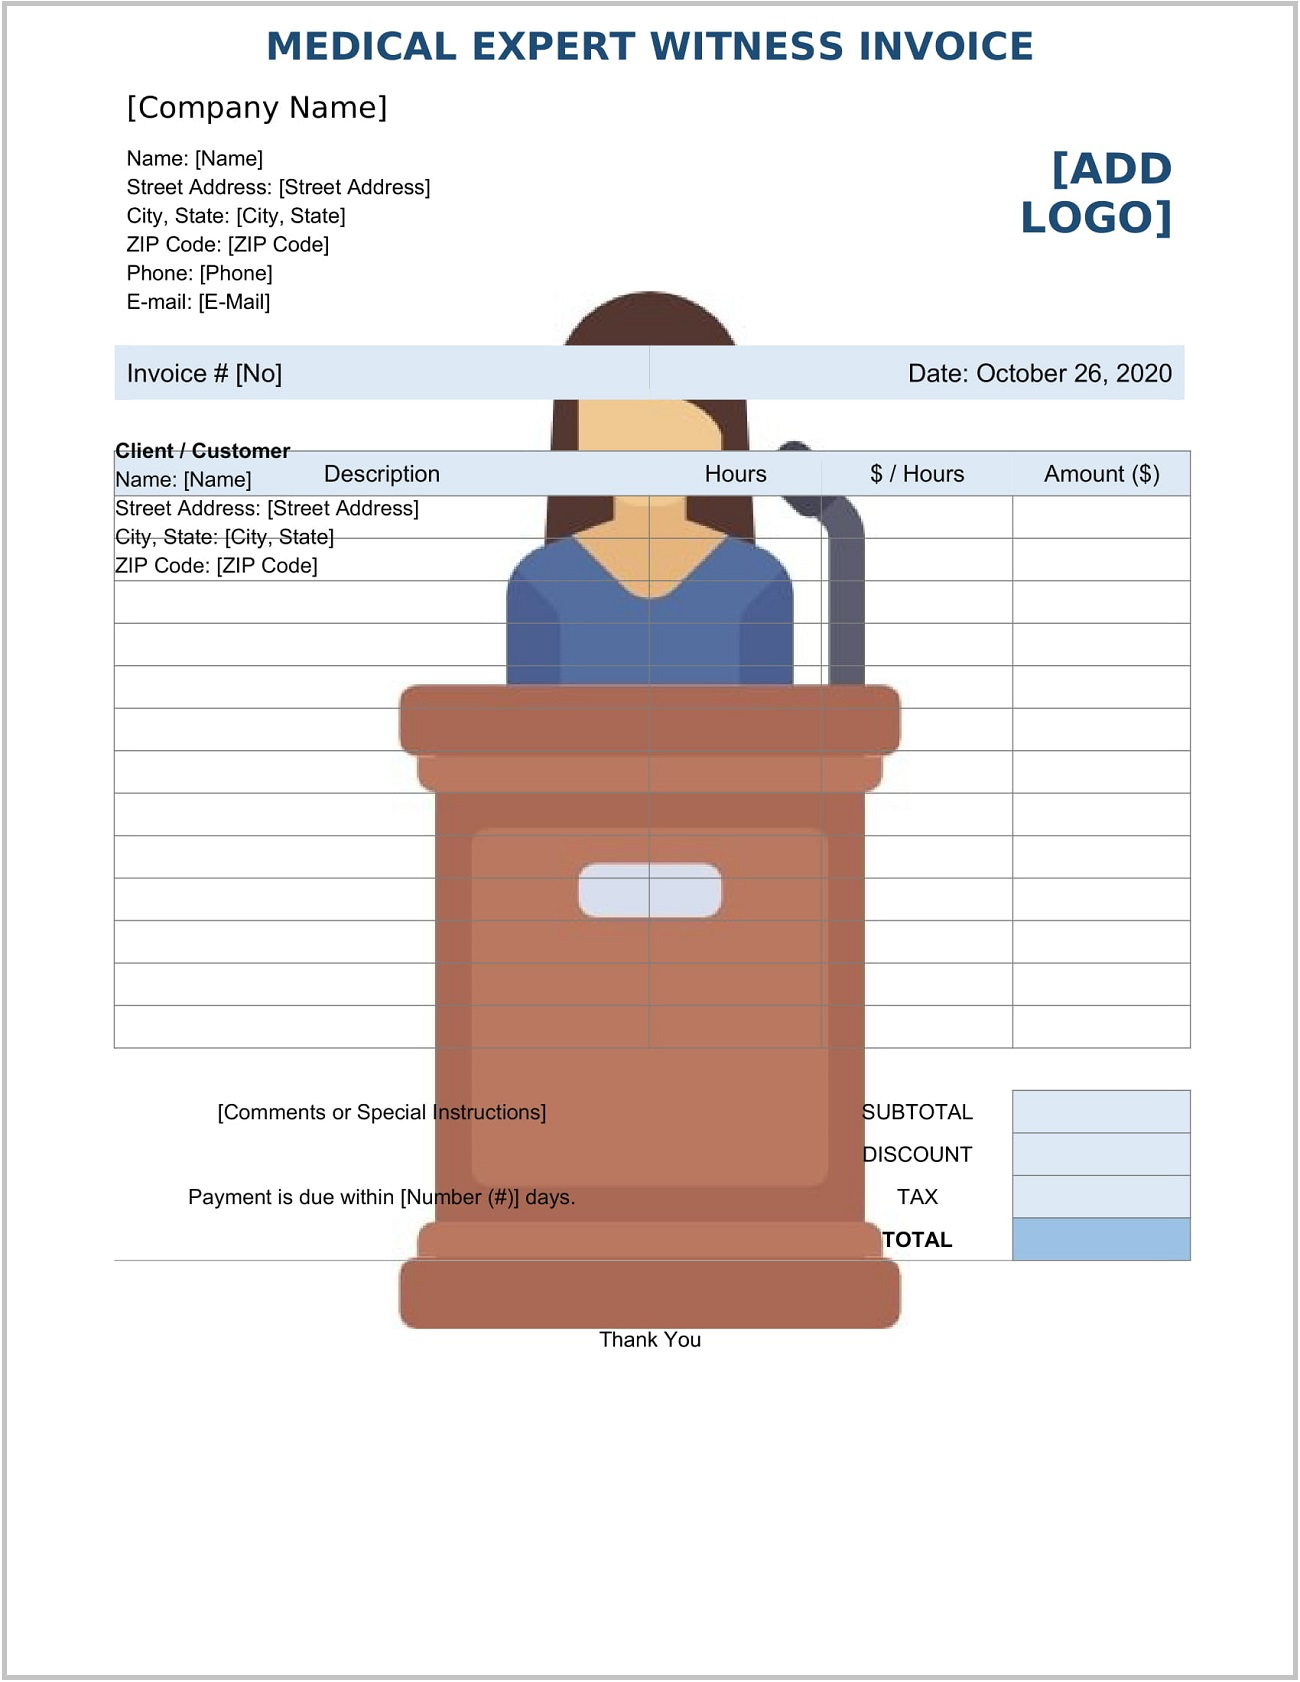 Medical Expert Witness Invoice Form Word Template